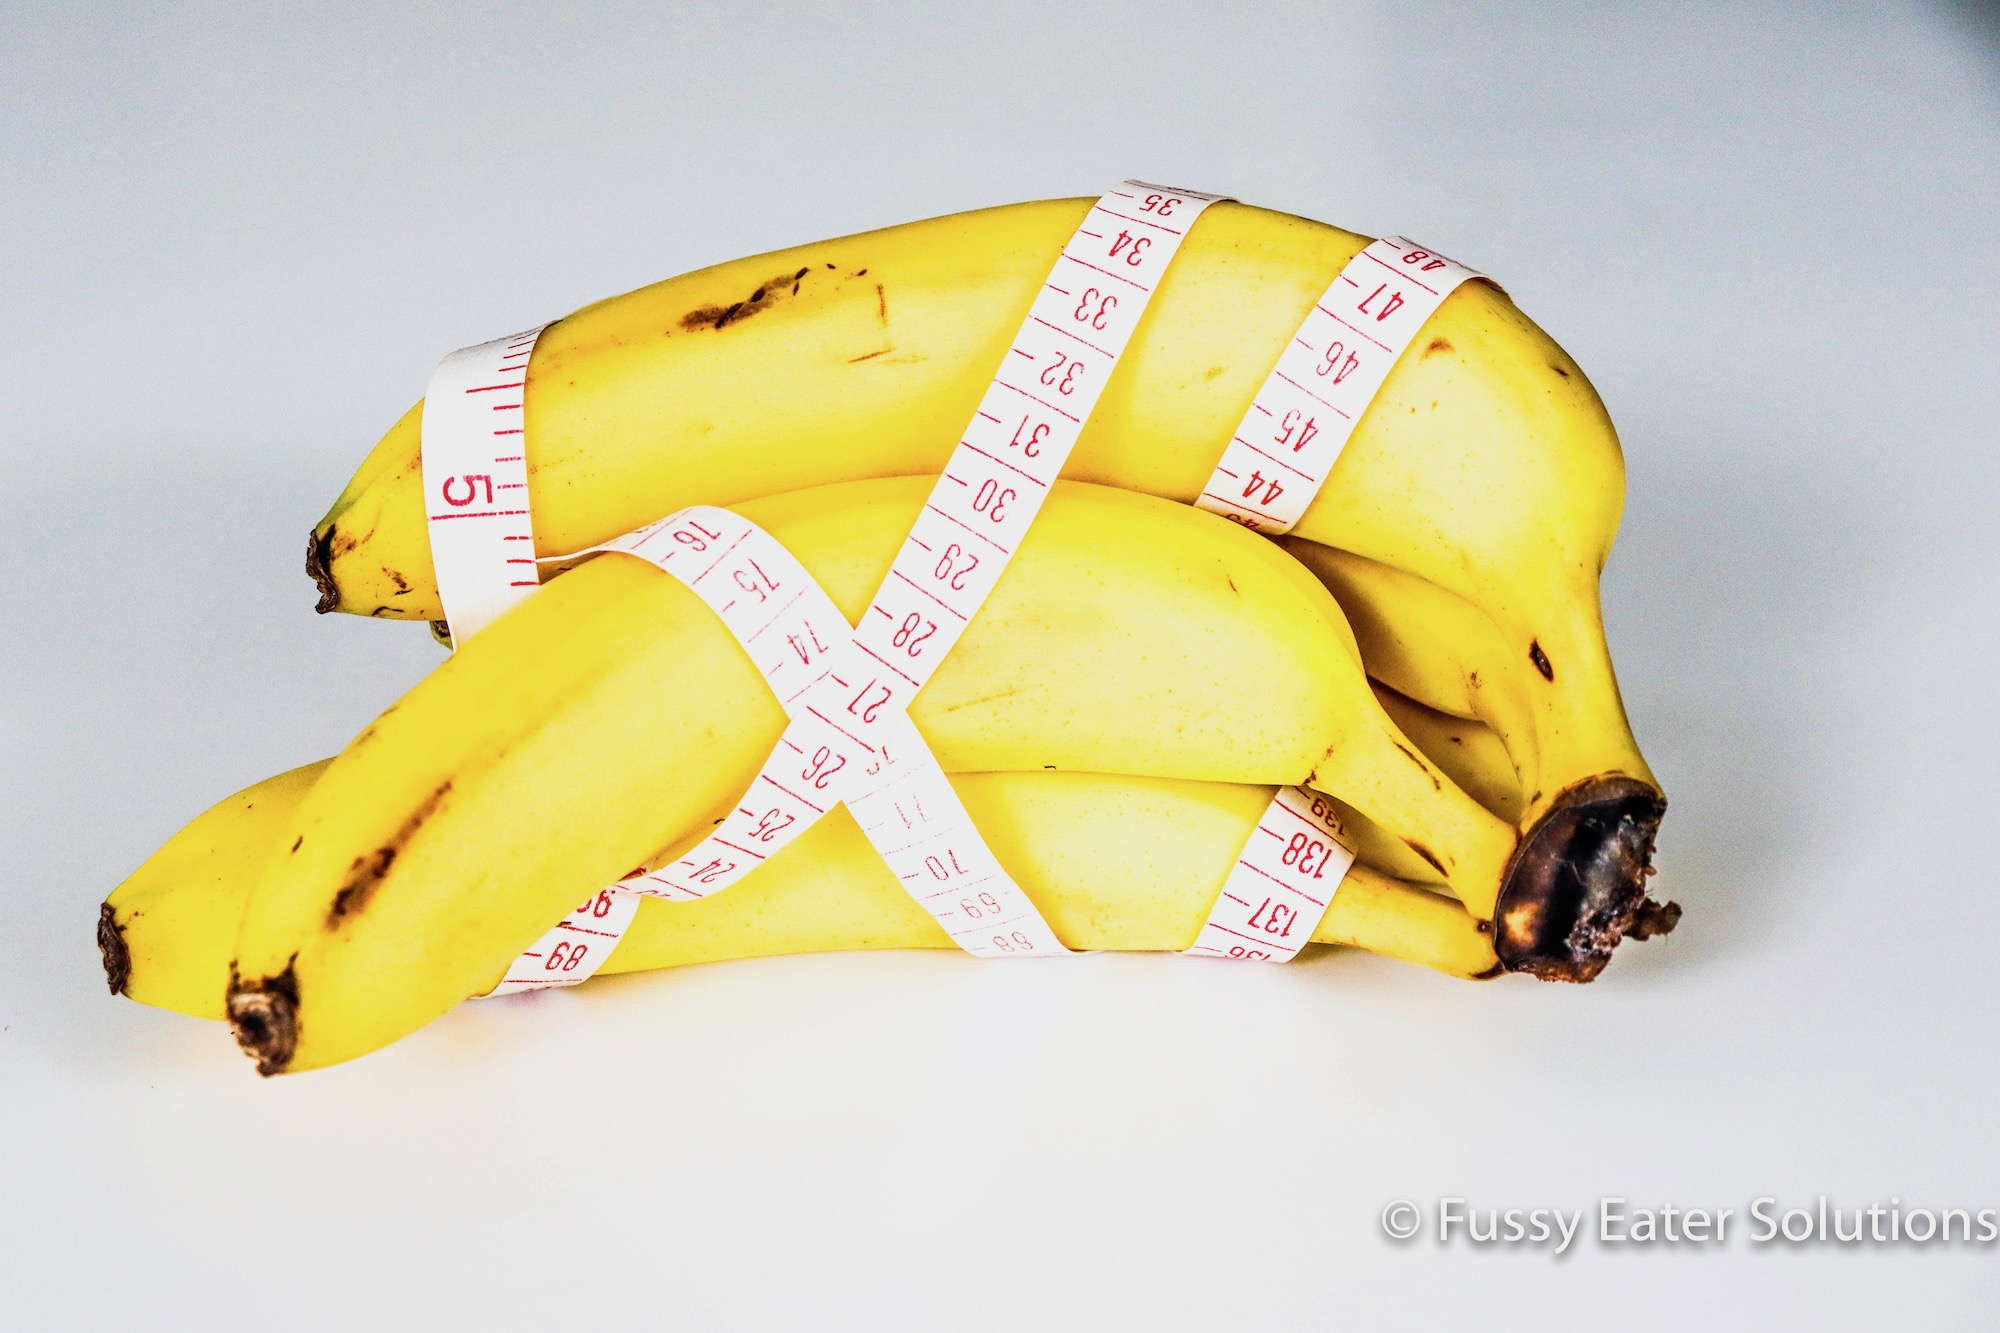 Bananas wrapped in measuring tape to suggest dieting